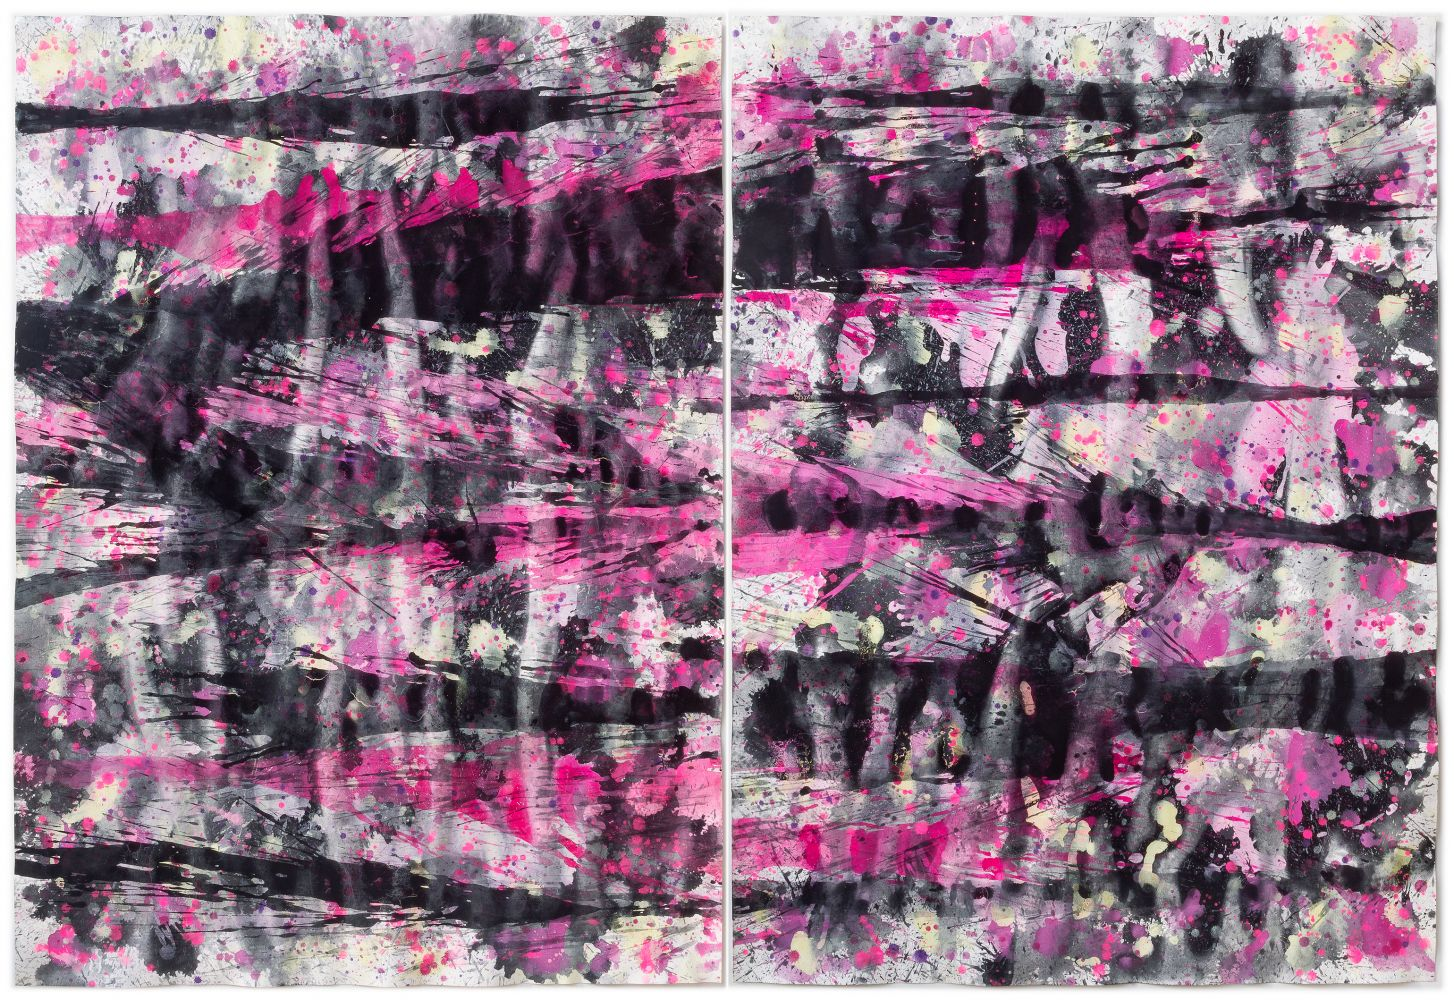 J. Steven Manolis-Flamingo 2014.02, gouache and watercolor on paper, 60x88 (2 panels 60x44 each), Abstract expressionism paintings for sale at Manolis Projects Art Gallery, Miami, Fl